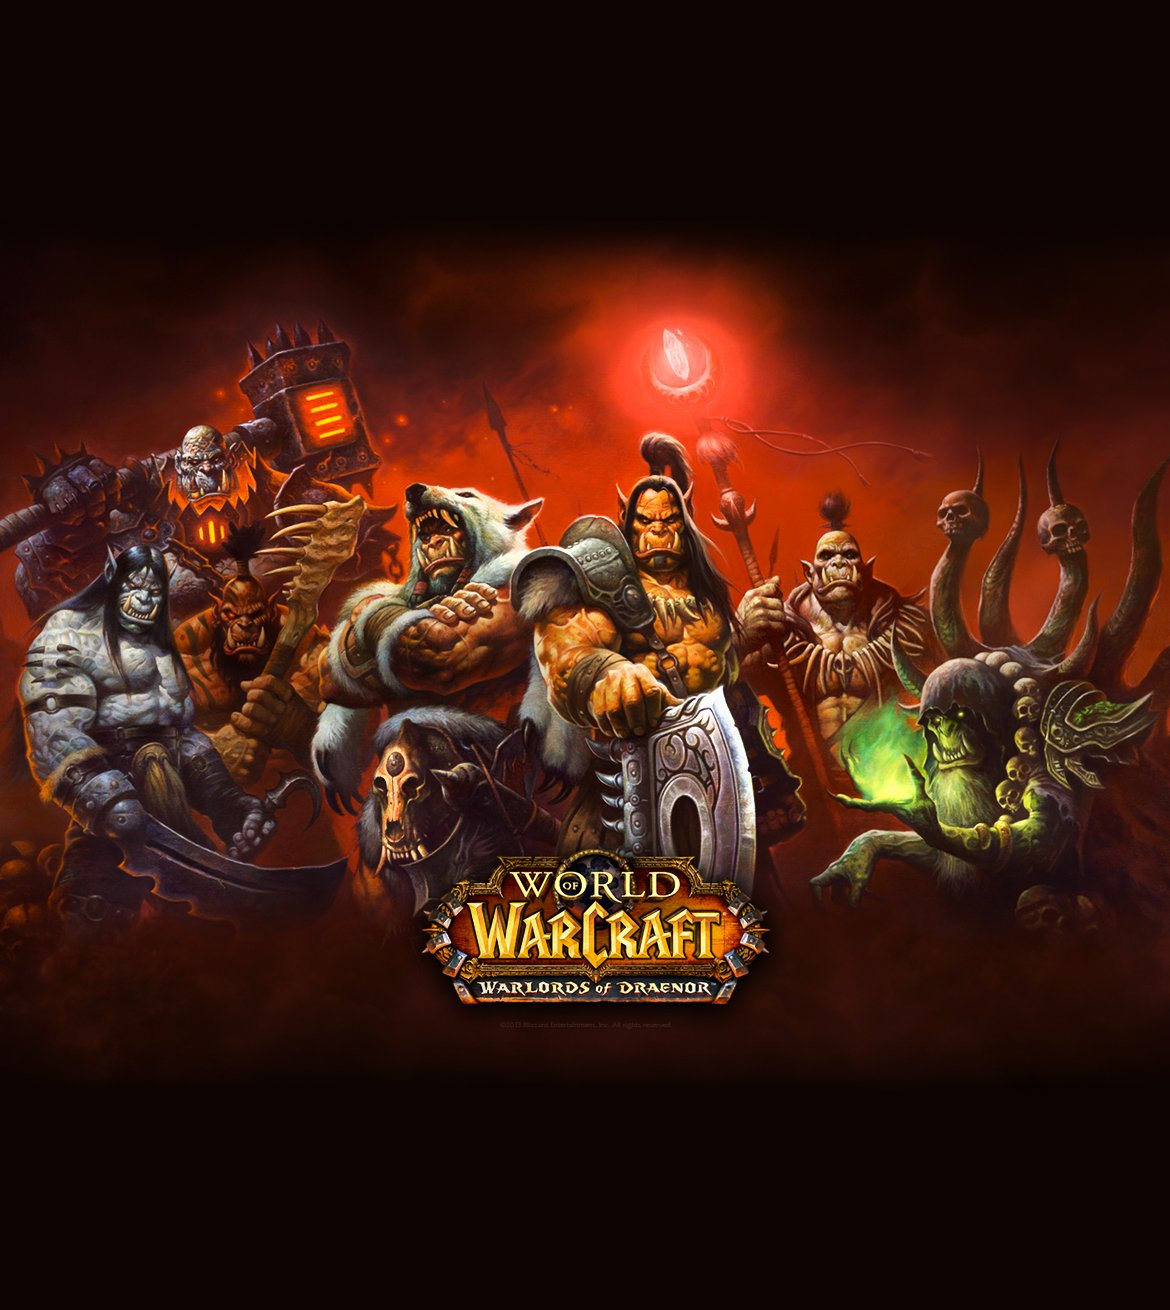 Warlords of Draenor Tumblr